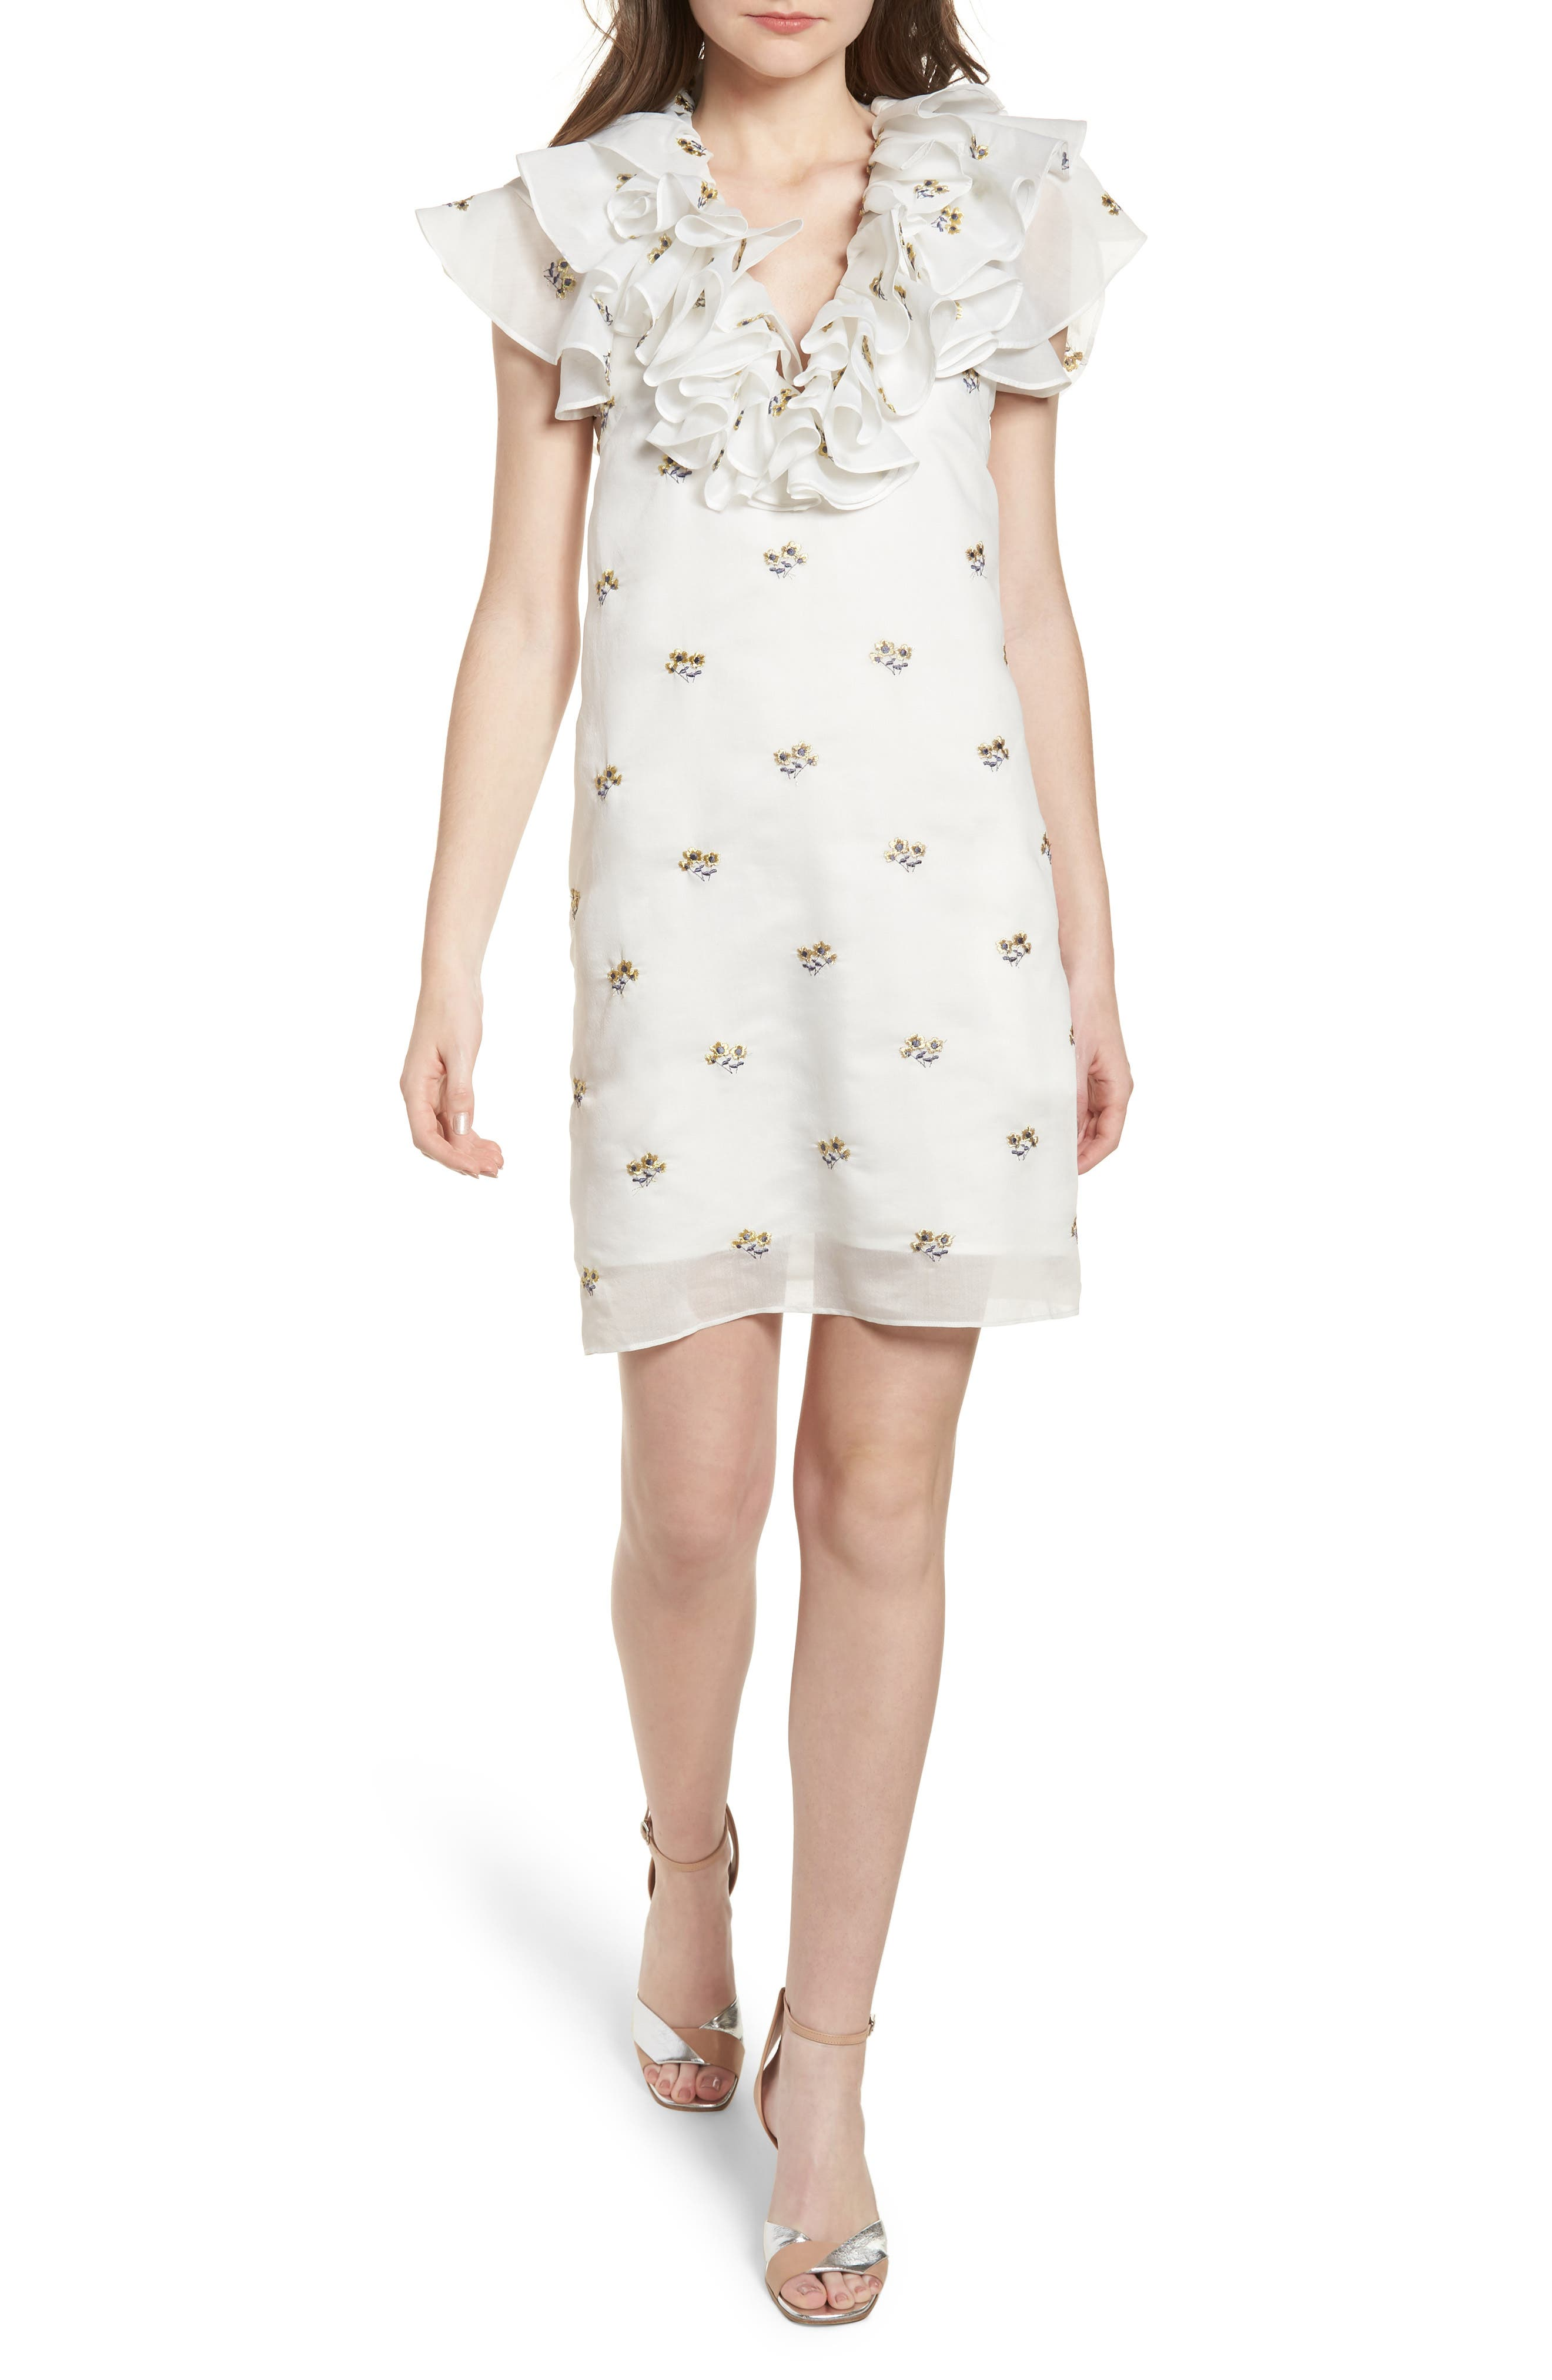 Theseus Embroidered Ruffle Dress,                             Main thumbnail 1, color,                             White